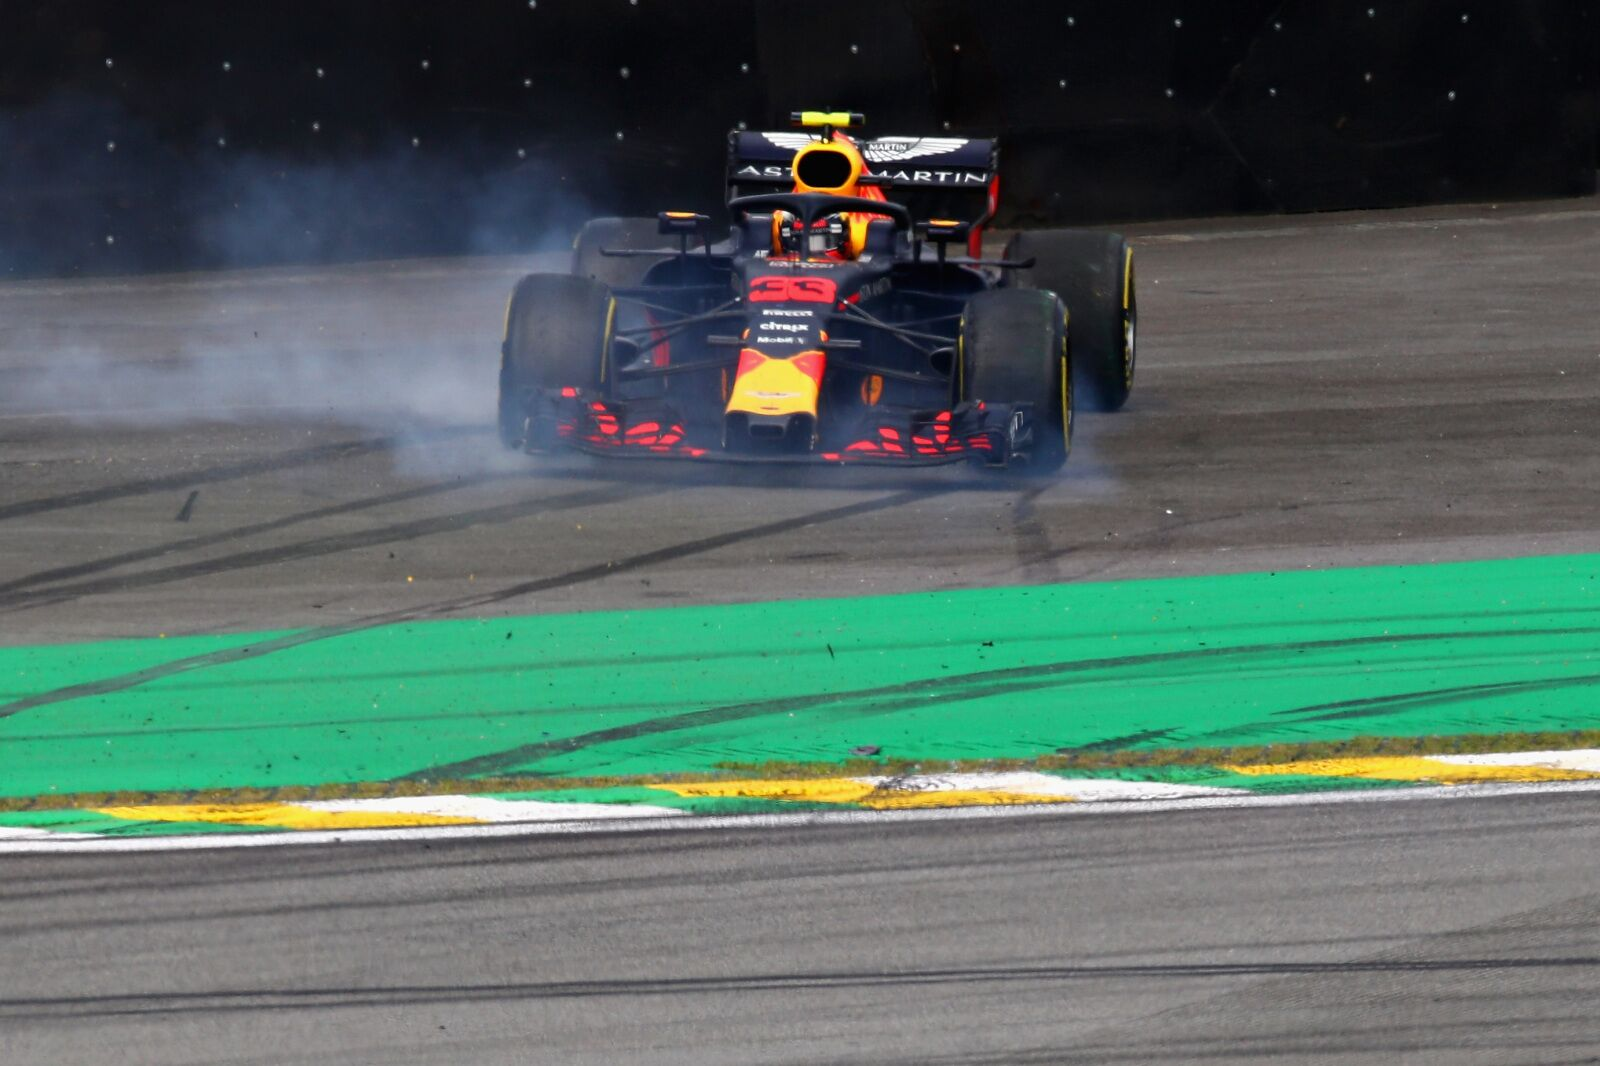 Formula 1: 3 races Max Verstappen should have won but didn't in 2018